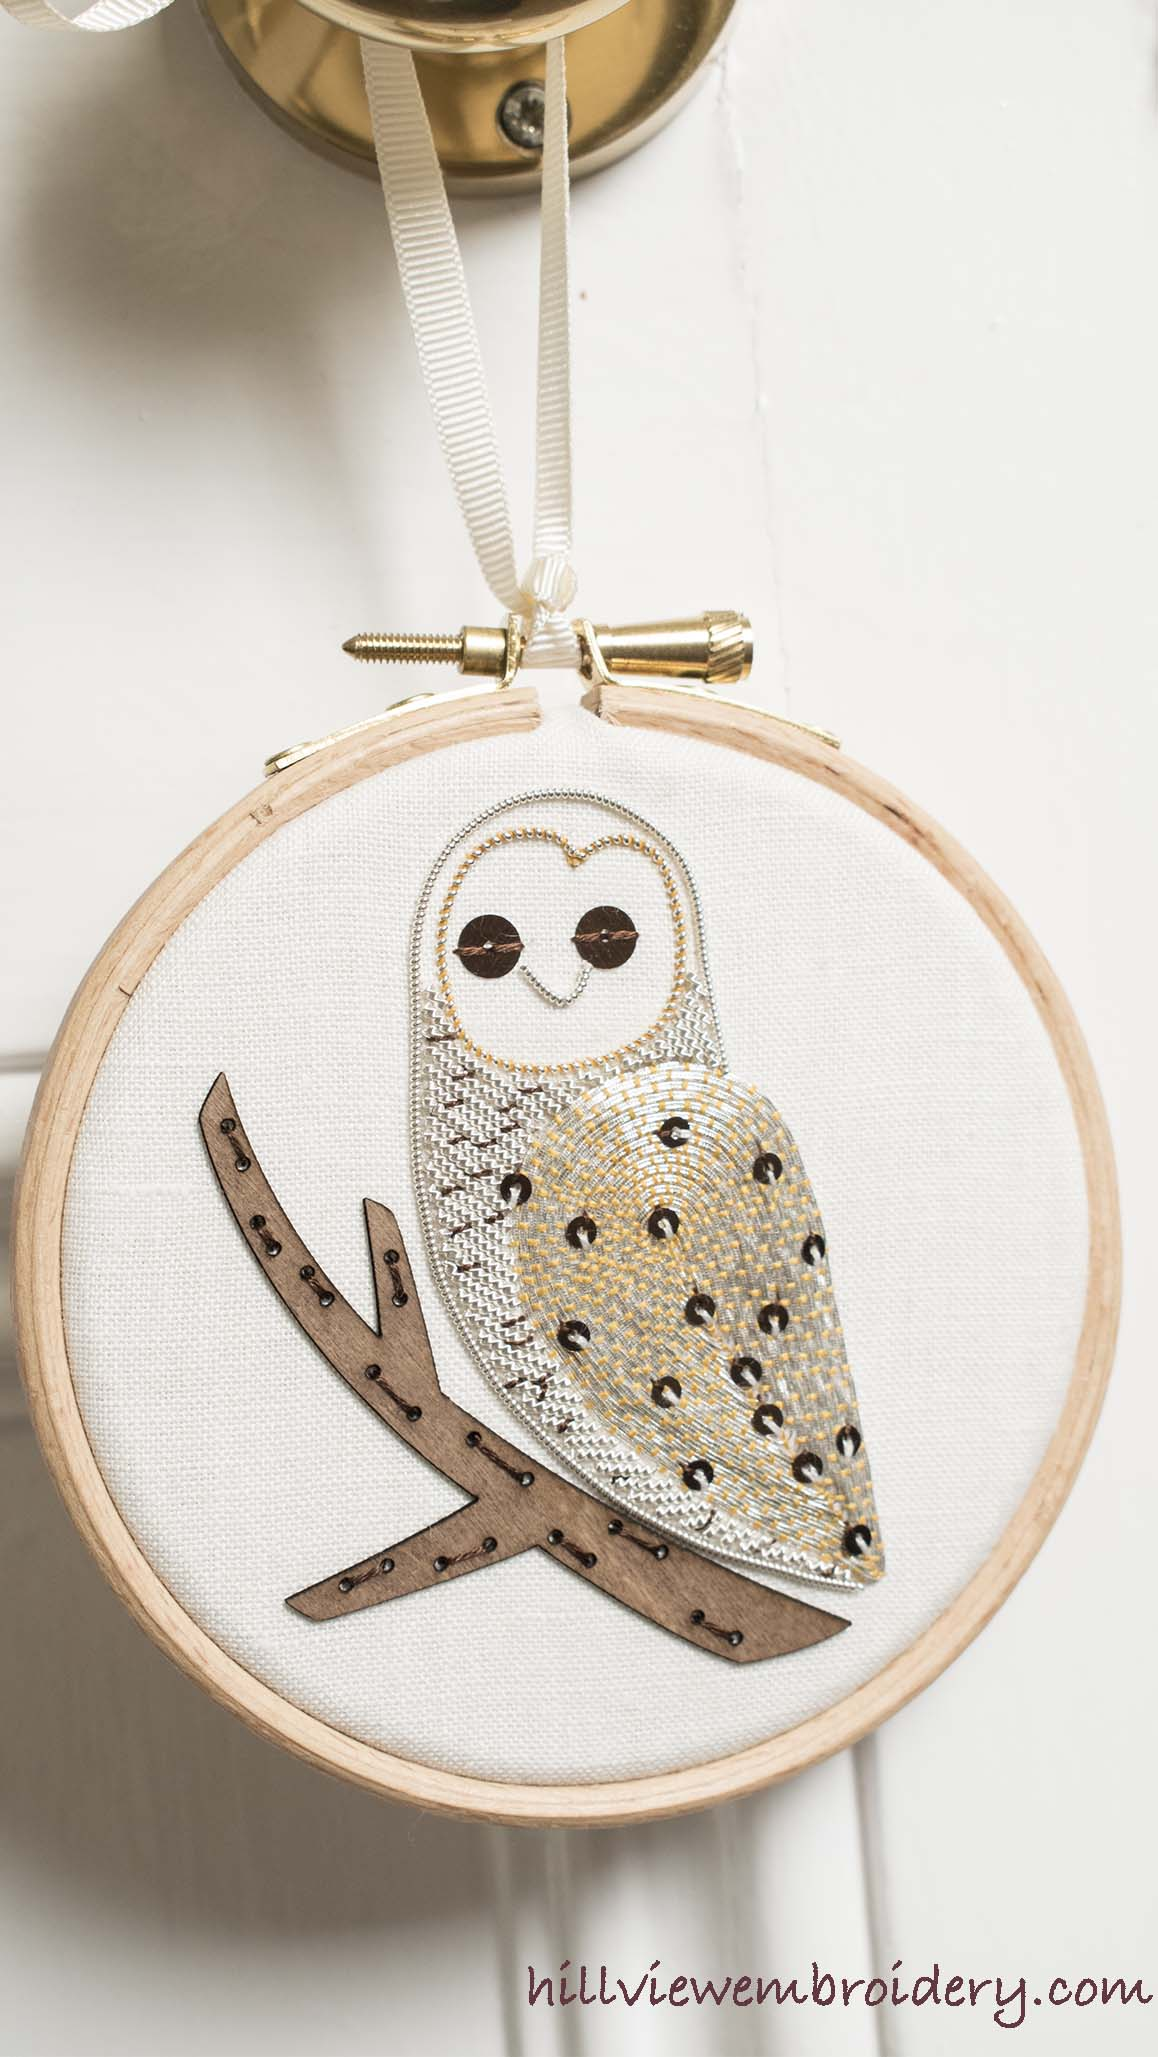 completed metallic work owl designed by Becky Hogg and stitched by Catherine Patterson